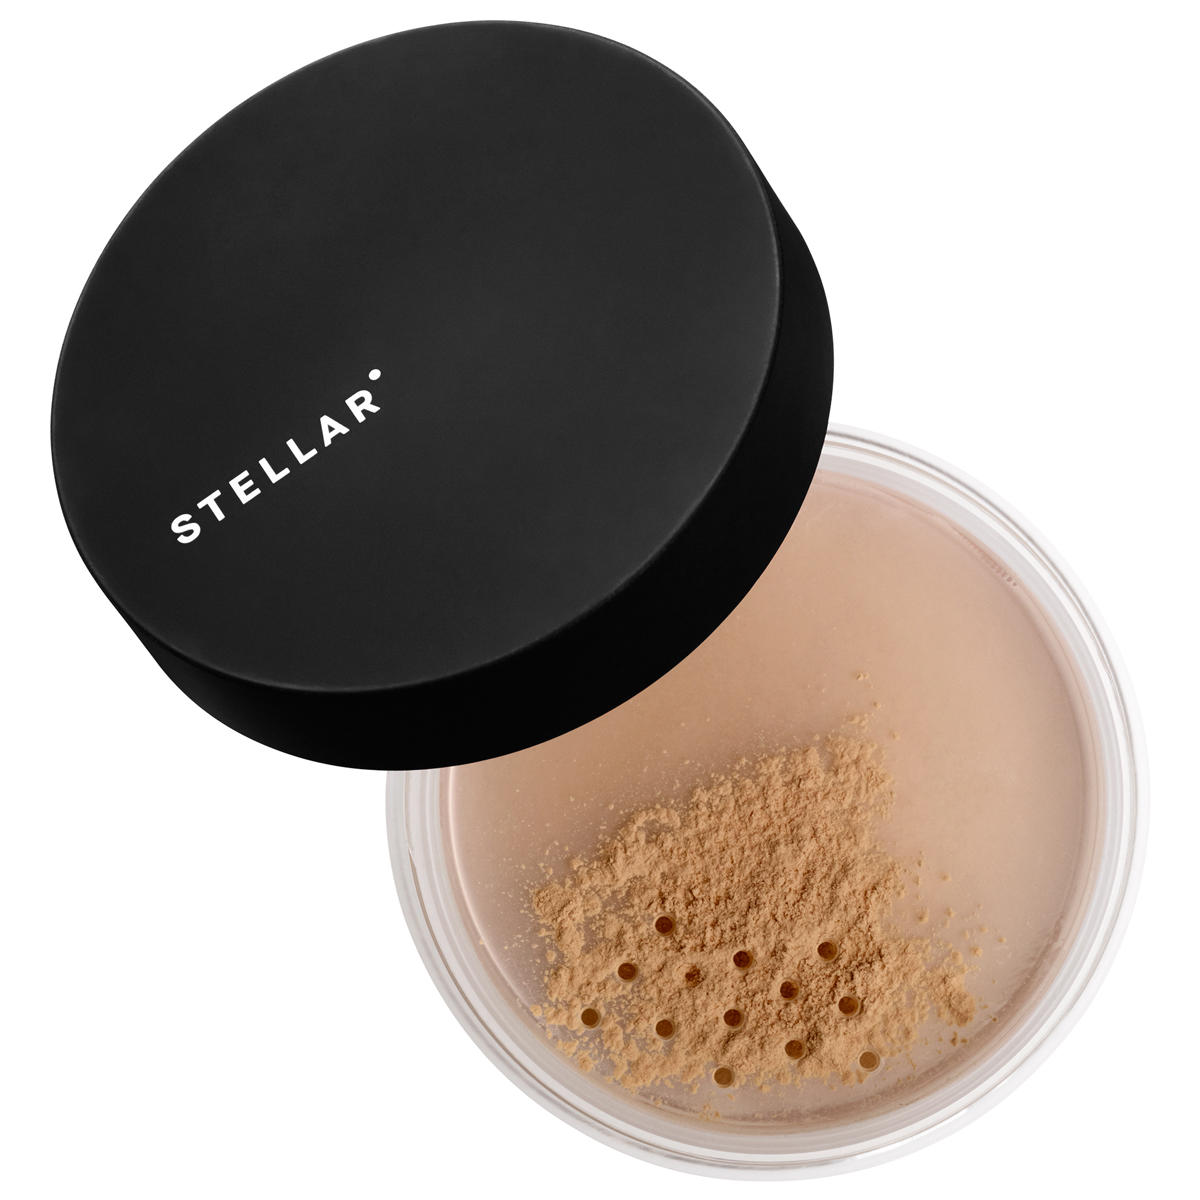 Stellar Cosmic Face Setting Powder Glow 02